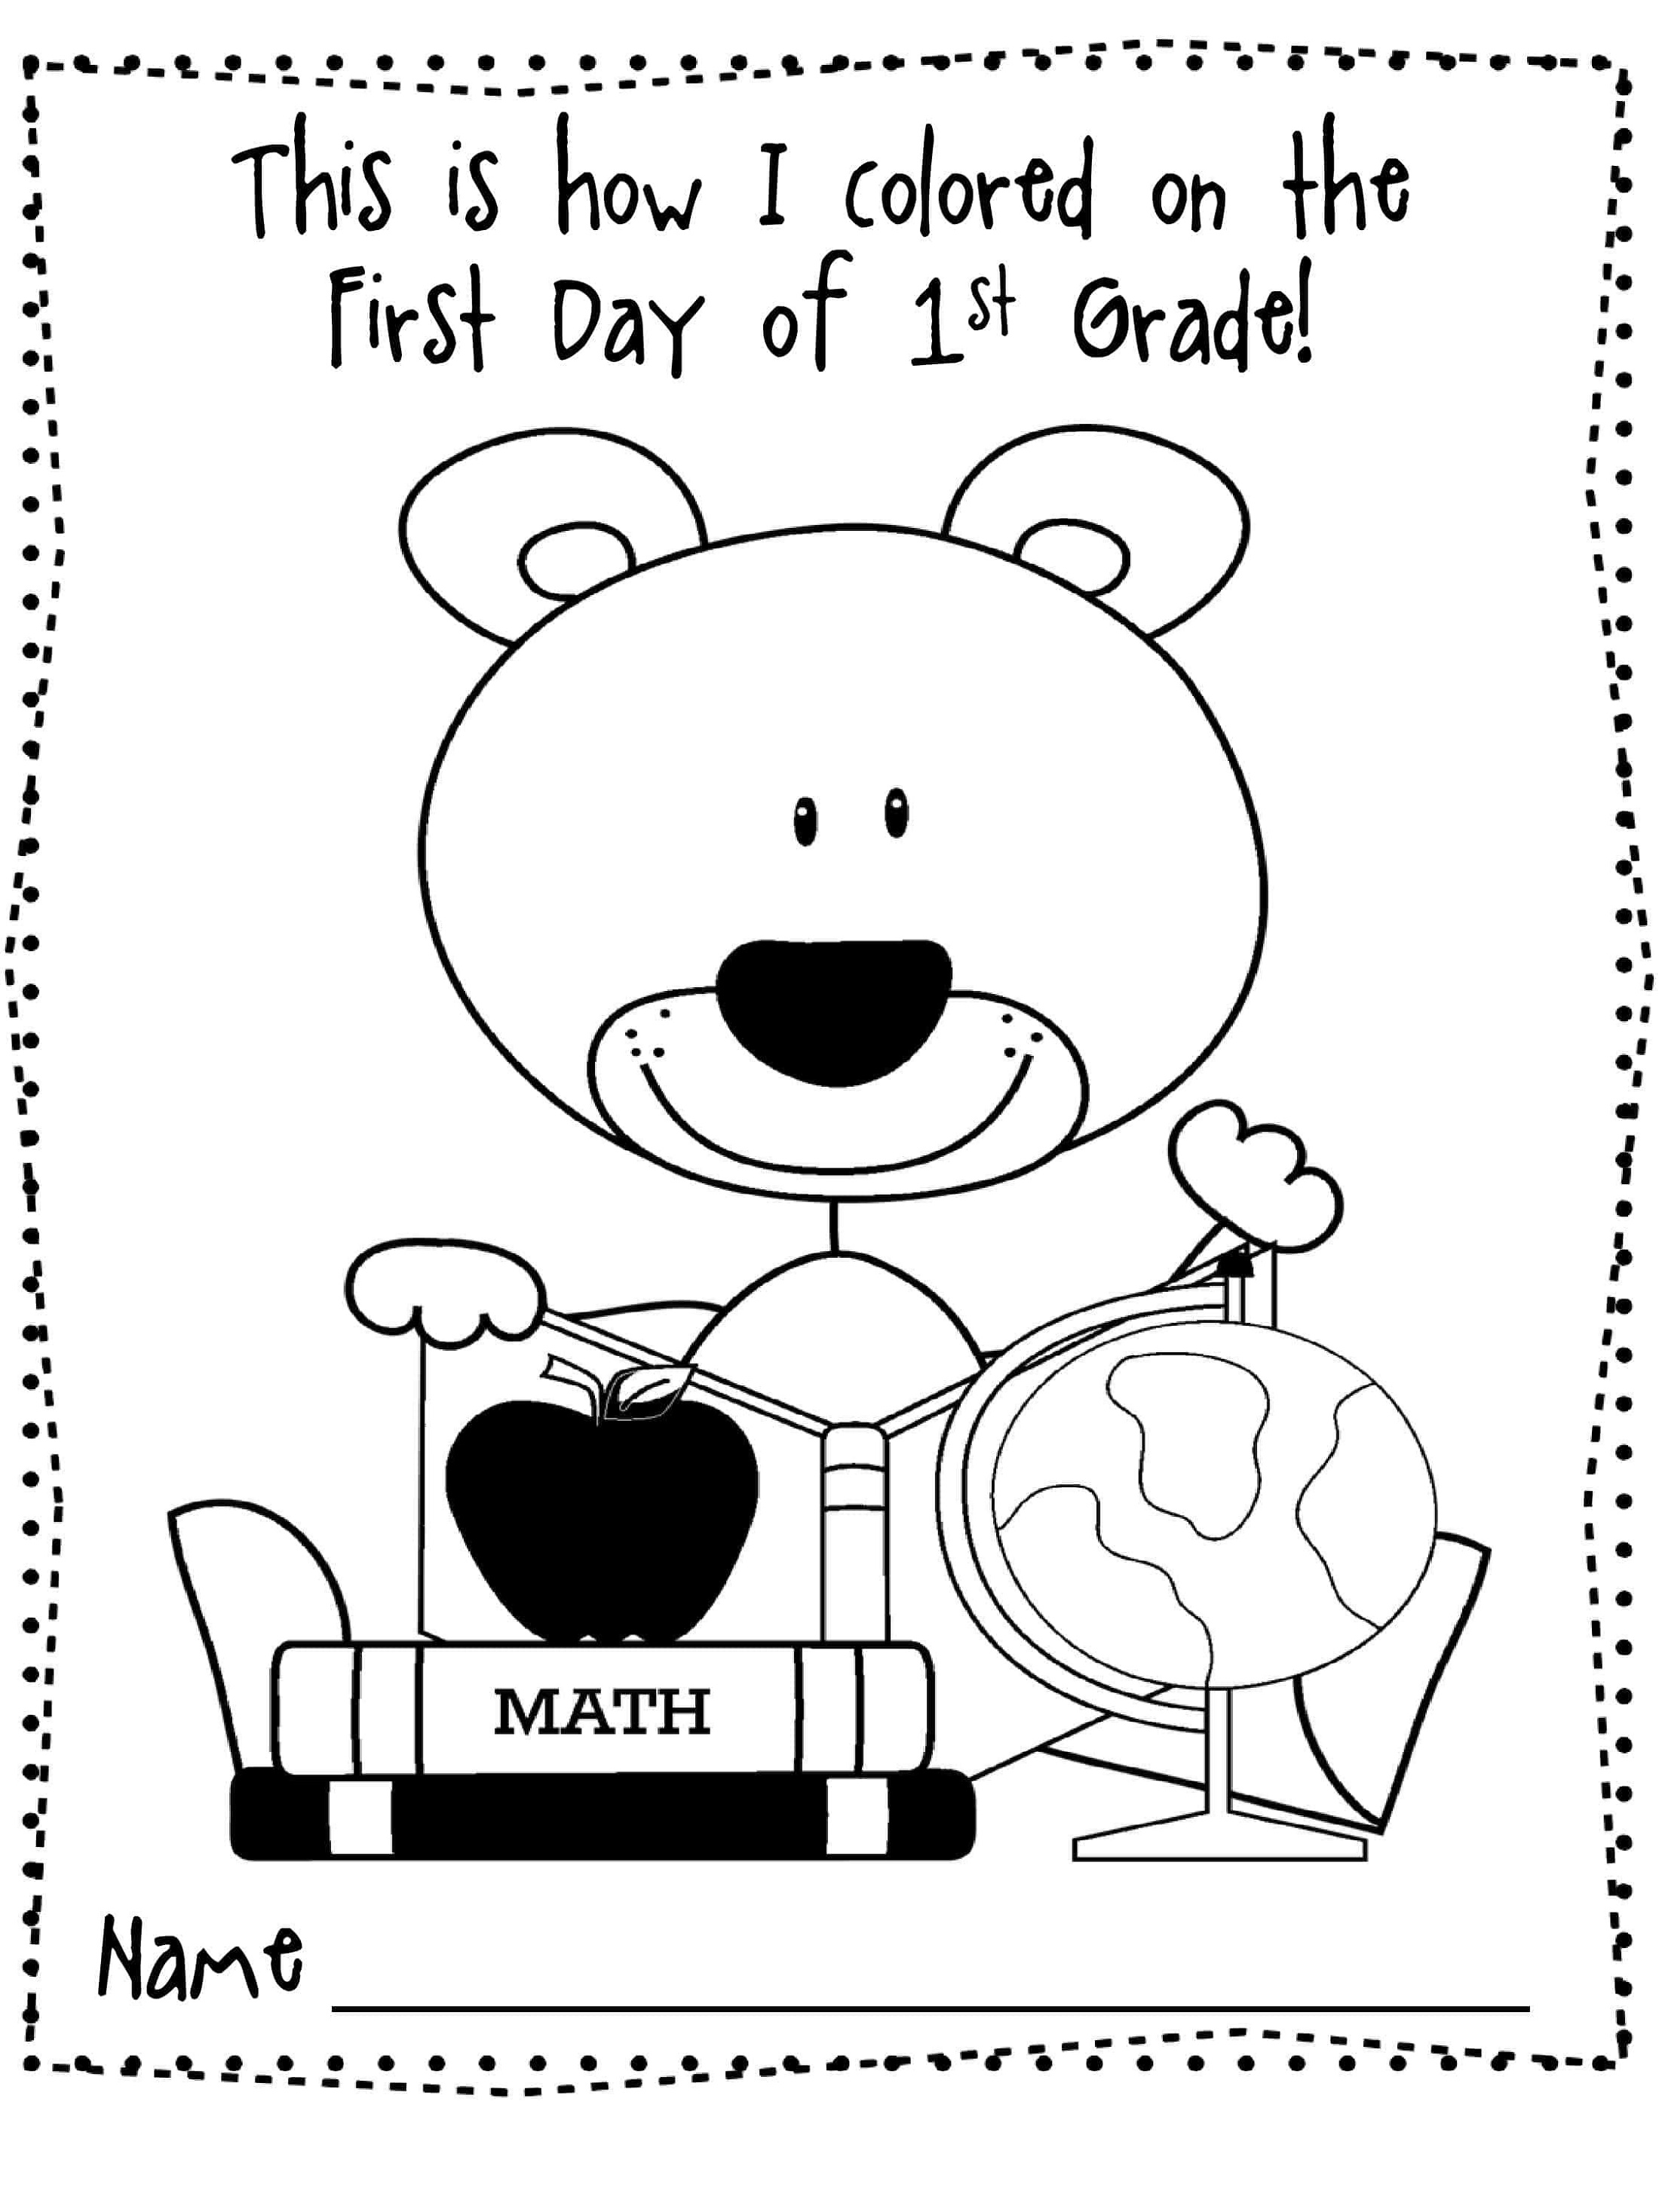 Last-Day-Of-School-Coloring-Pages-For-Kids